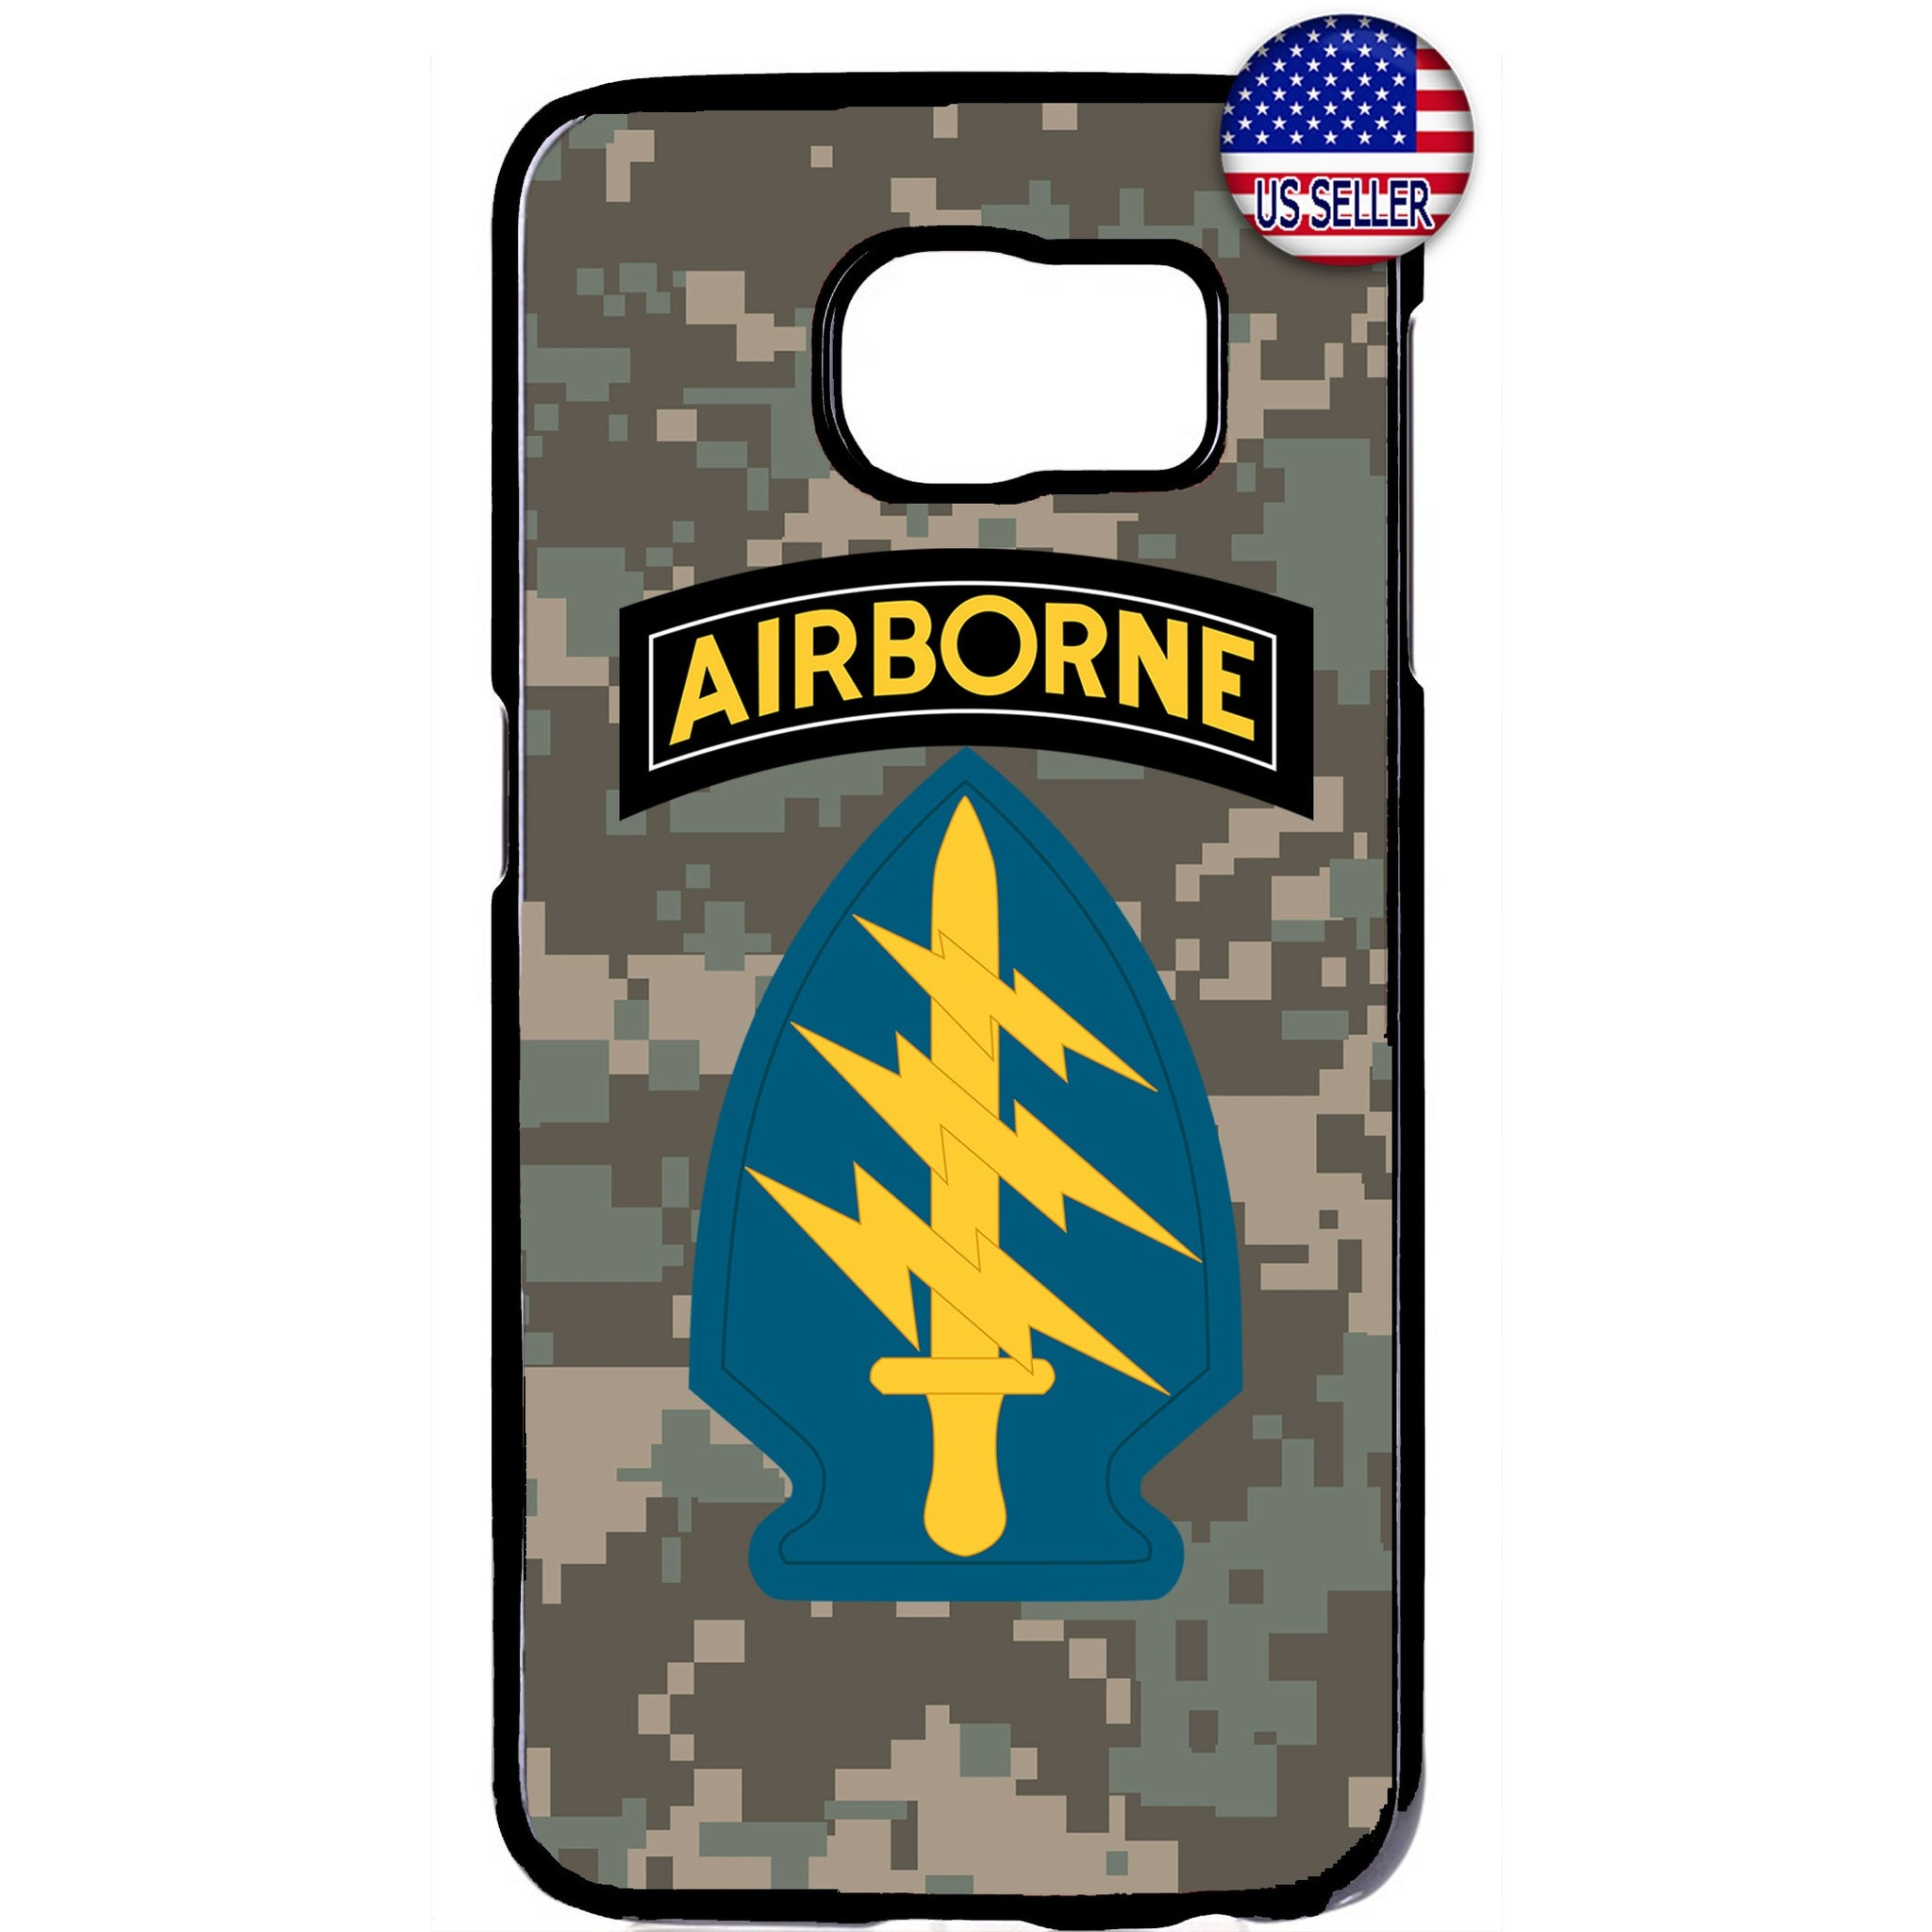 US Airborne Camo Sword Military Forces RUbber Case Cover For Samsung Galaxy Note